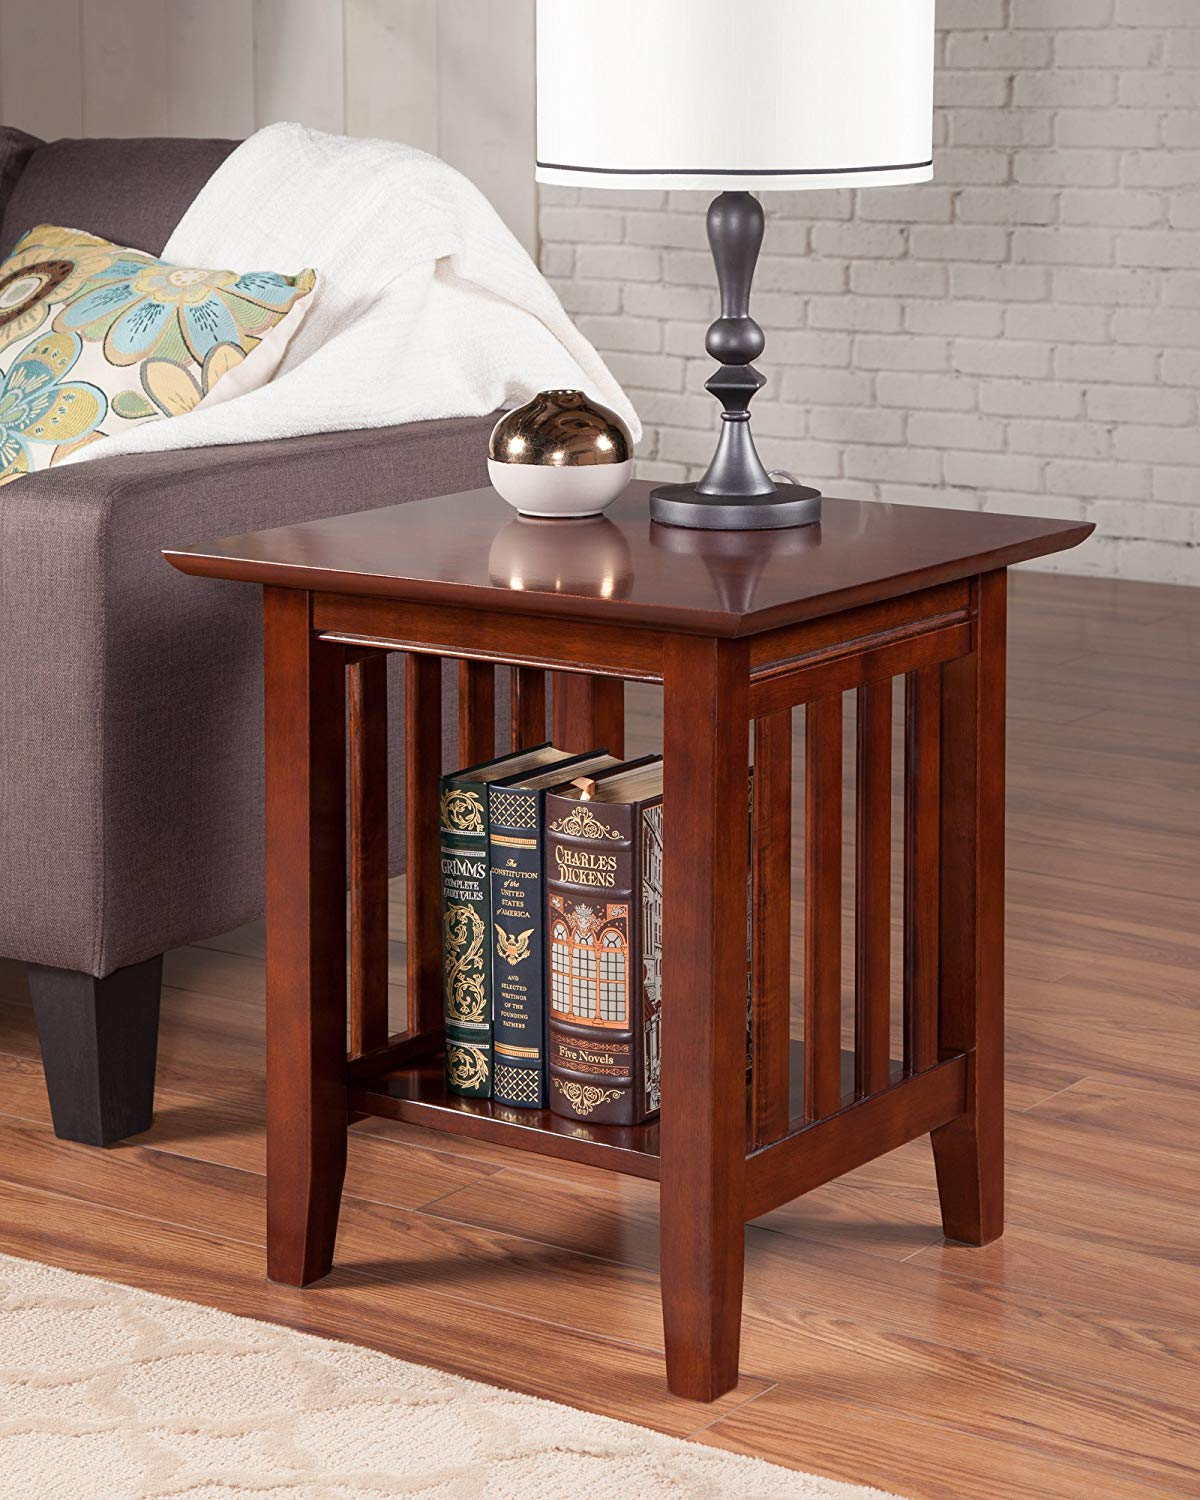 atlantic furniture mission end table rubberwood tables walnut kitchen dining pine log bar stools black perspex coffee unique ethan allen entryway round glass wood tall stand lamps